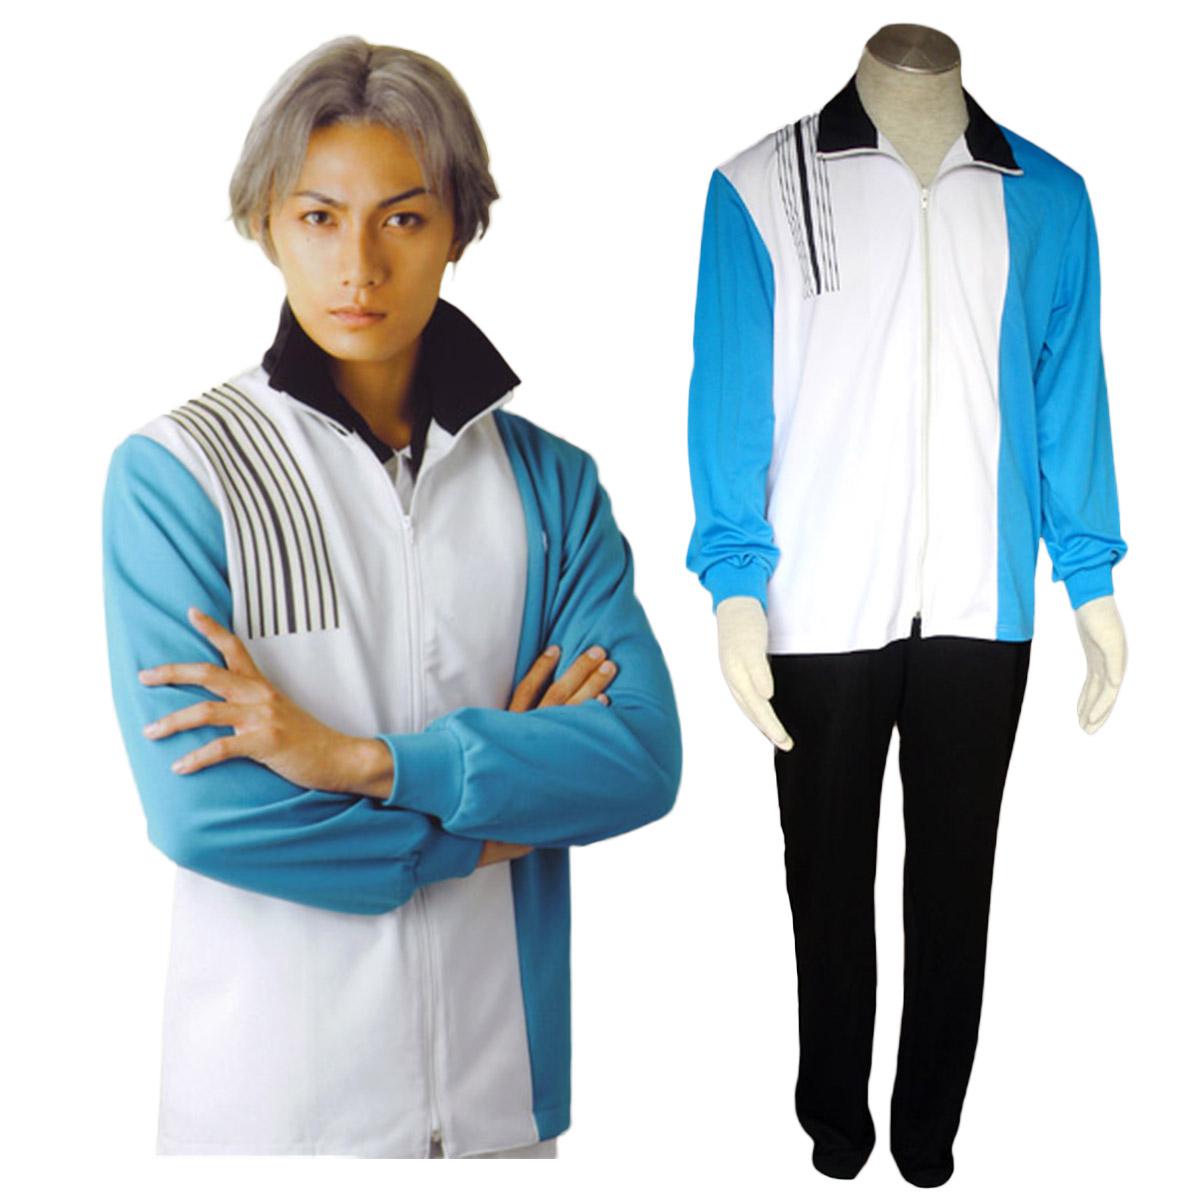 Fantasias The Prince of Tennis Hyotel Gakuen Uniforme de Invernos Trajes Cosplay